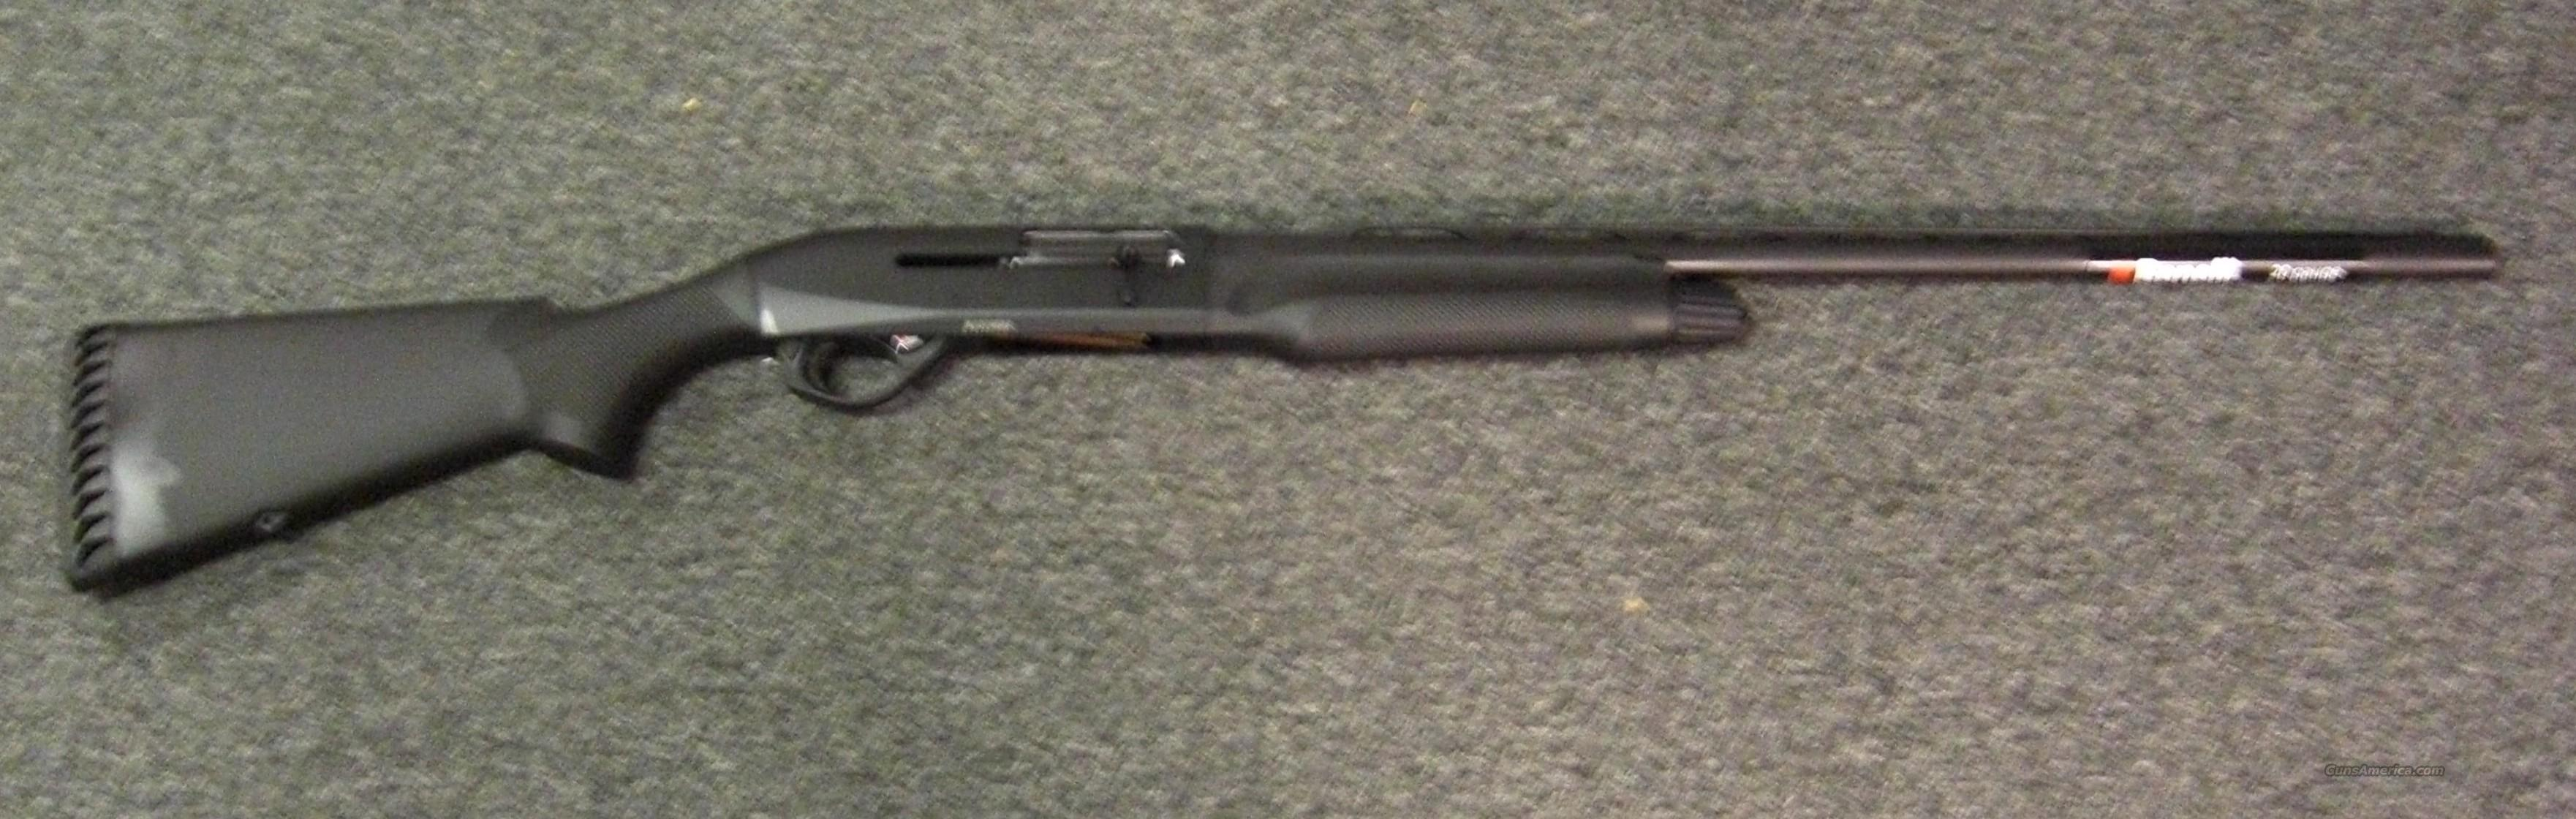 M2  model #11033 American  Guns > Shotguns > Benelli Shotguns > Sporting